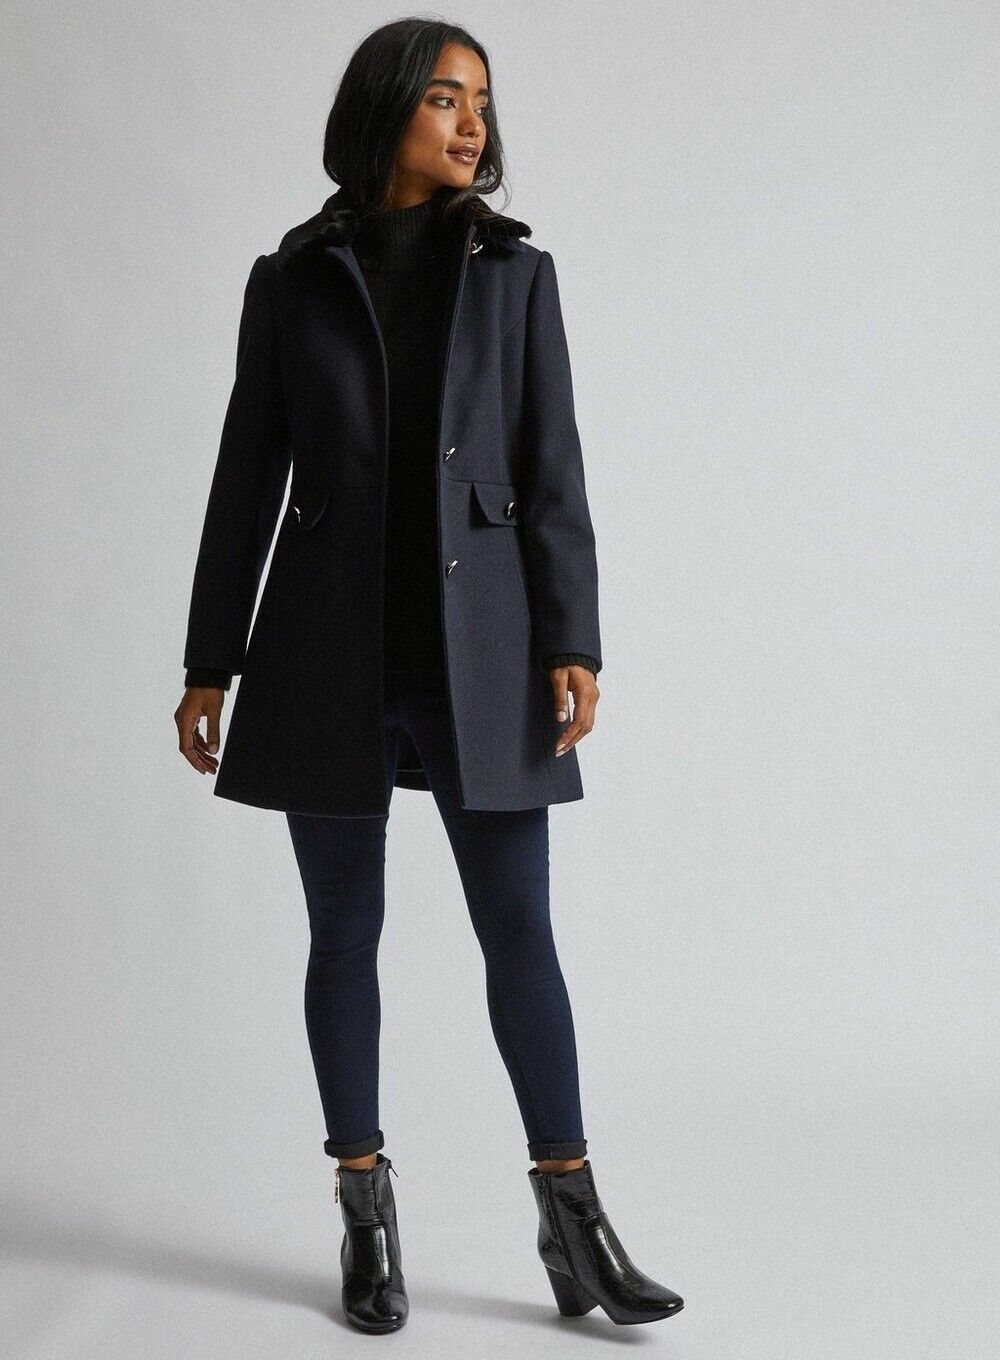 💜BRAND NEW WITH TAGS DOROTHY PERKINS SIZE 6 NAVY COAT warm💜